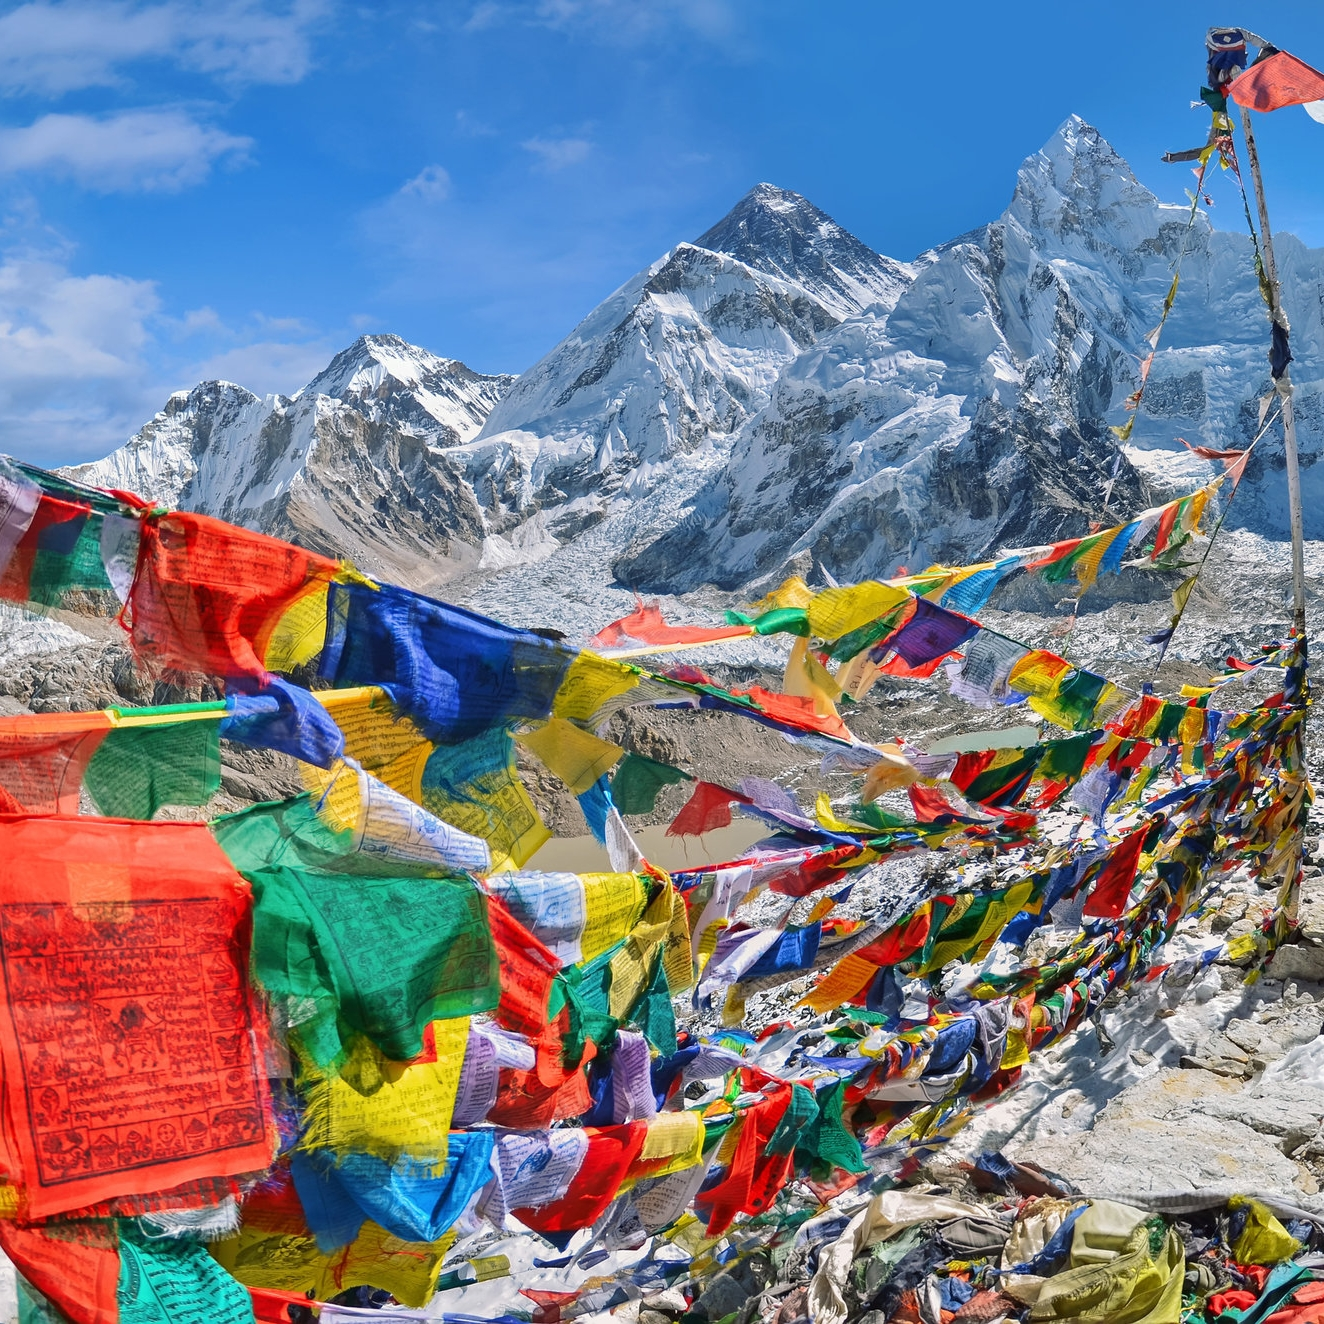 Video: Everest Trip Diary - Watch a recap of one of our teams that travelled to base of the tallest mountain in the world in August 2017